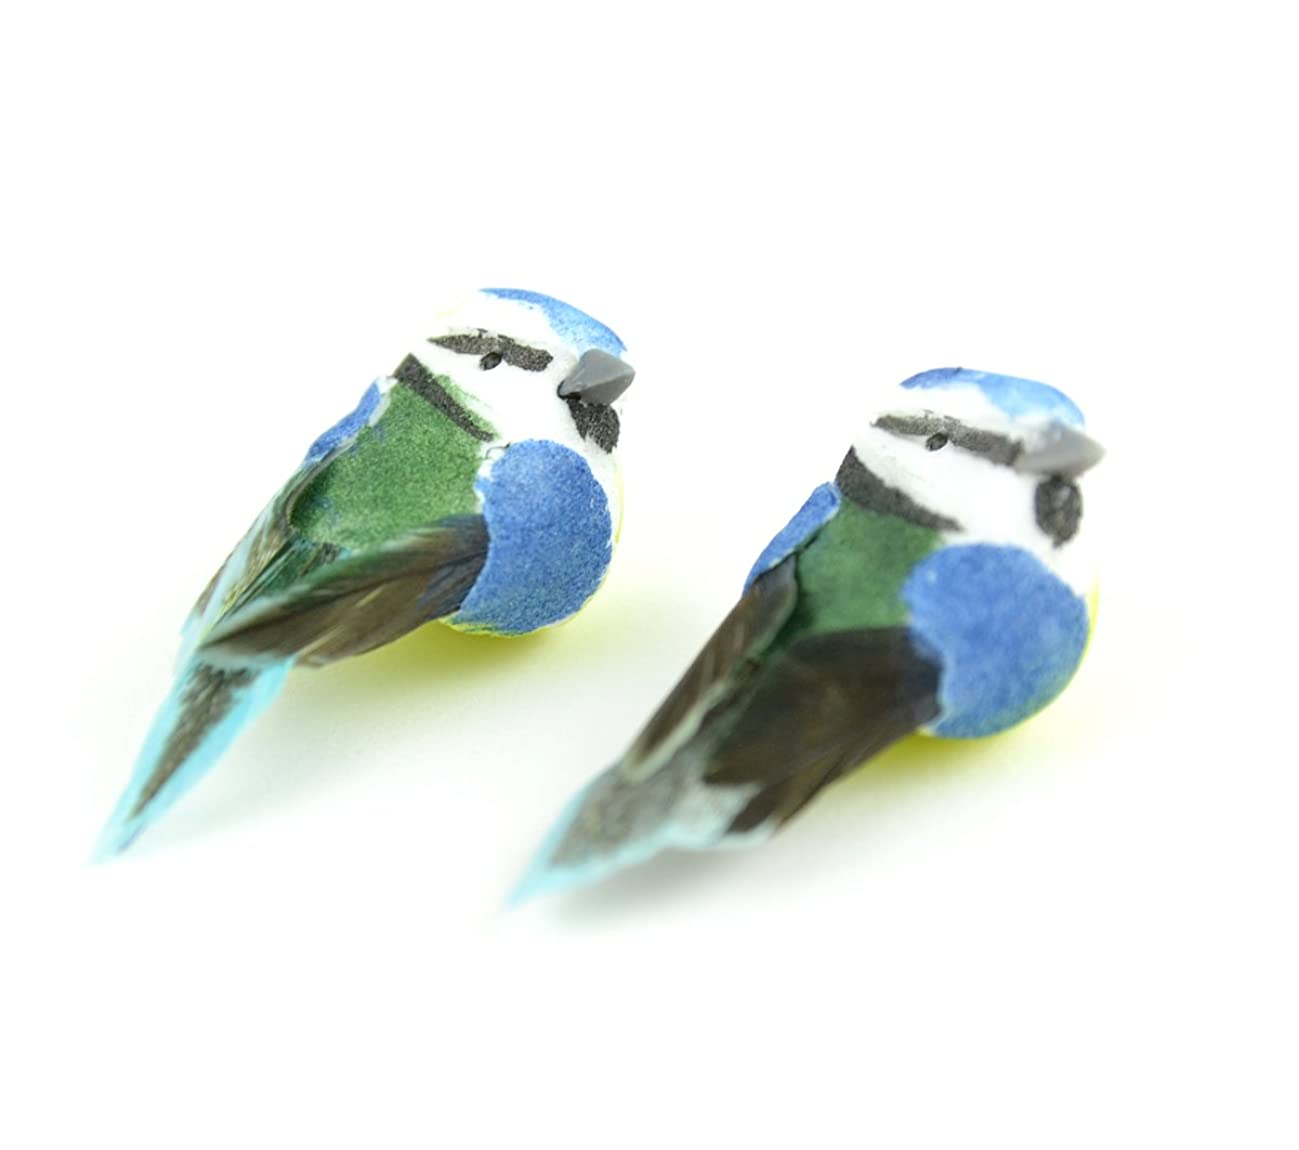 Touch of Nature Mini Blue Tit Birds 1.25inch, 2pc, 3 Piece